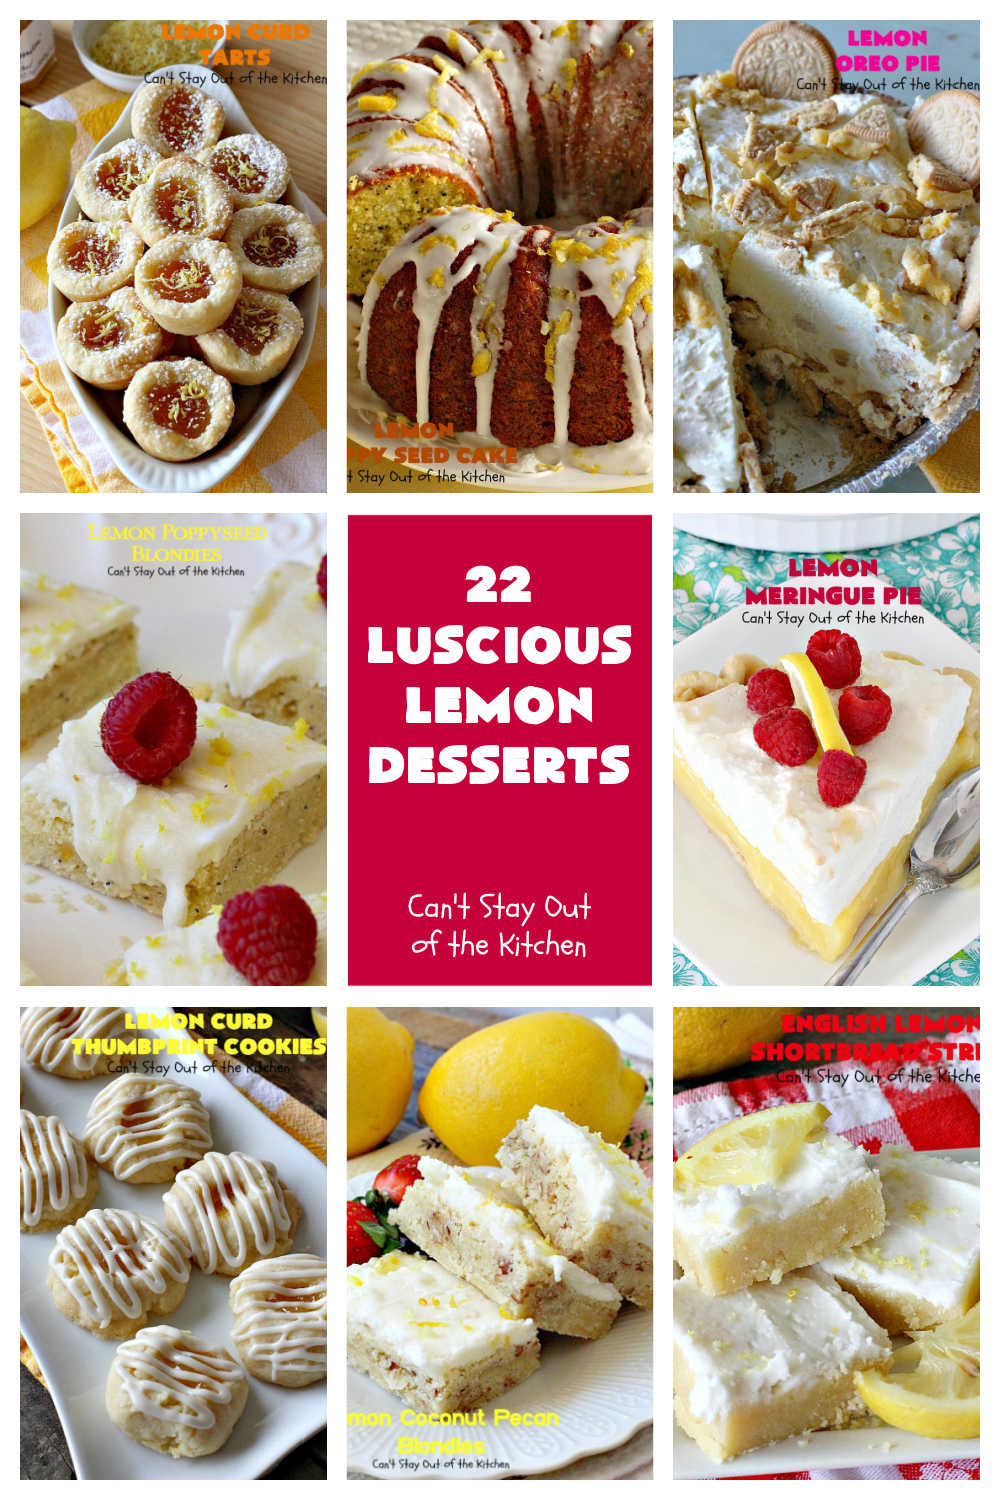 22 Luscious Lemon Desserts | Can't Stay Out of the Kitchen | 22 fabulous #lemon flavored #desserts & #muffin #recipes. Includes #pies, #cakes, #cookies & #blondies. If you have a lemon sweet tooth, these terrific desserts are for you!